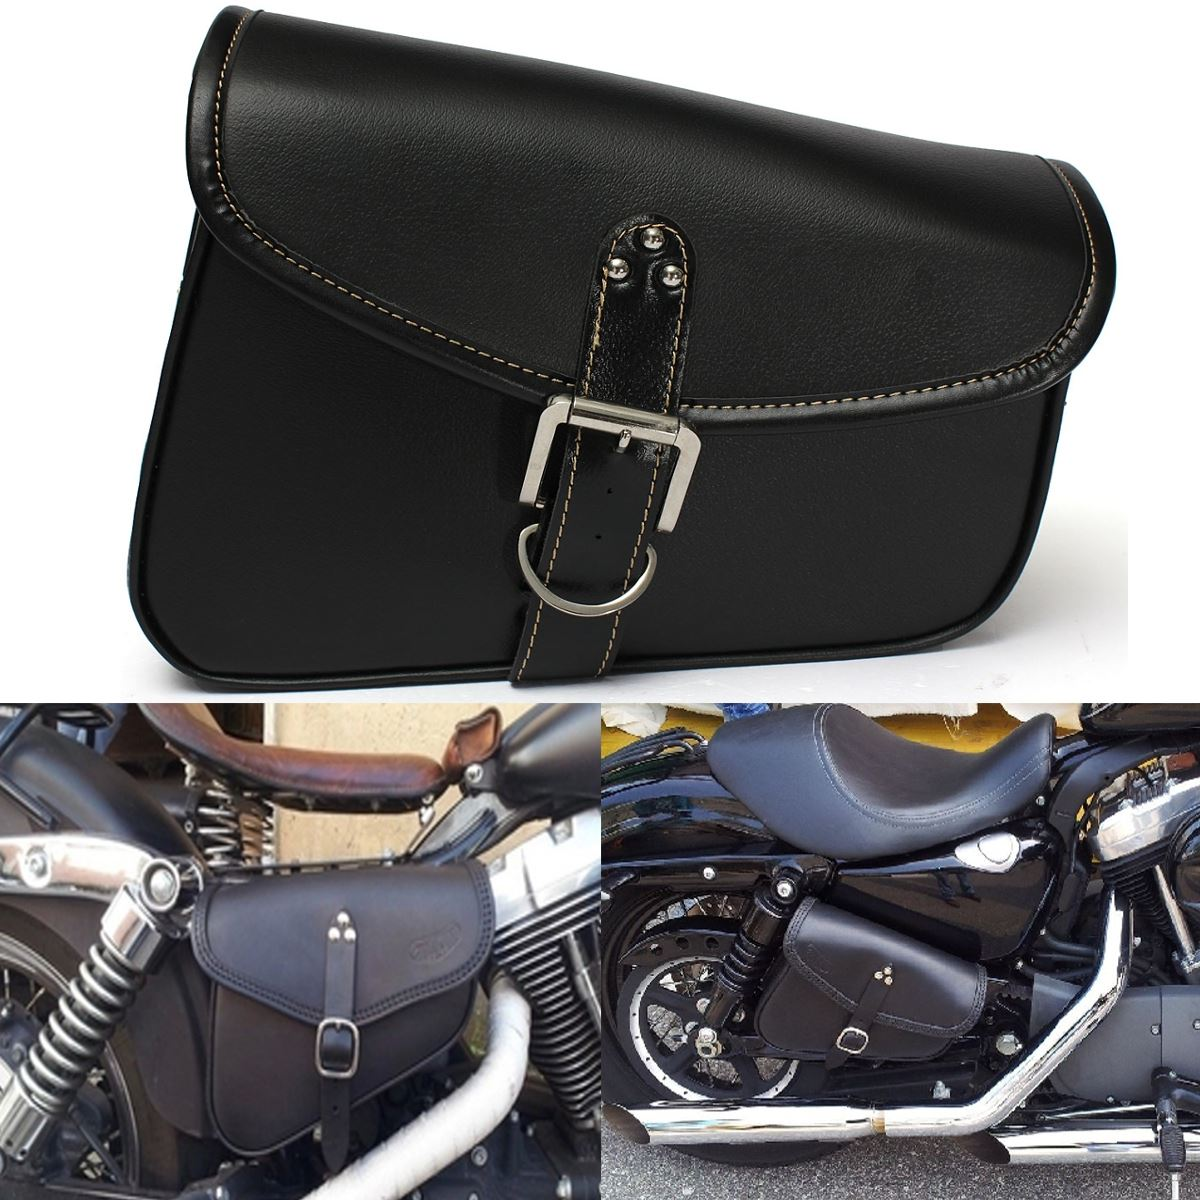 Motorcycle Pu Leather Saddlebags Saddle Tool Pouch Side